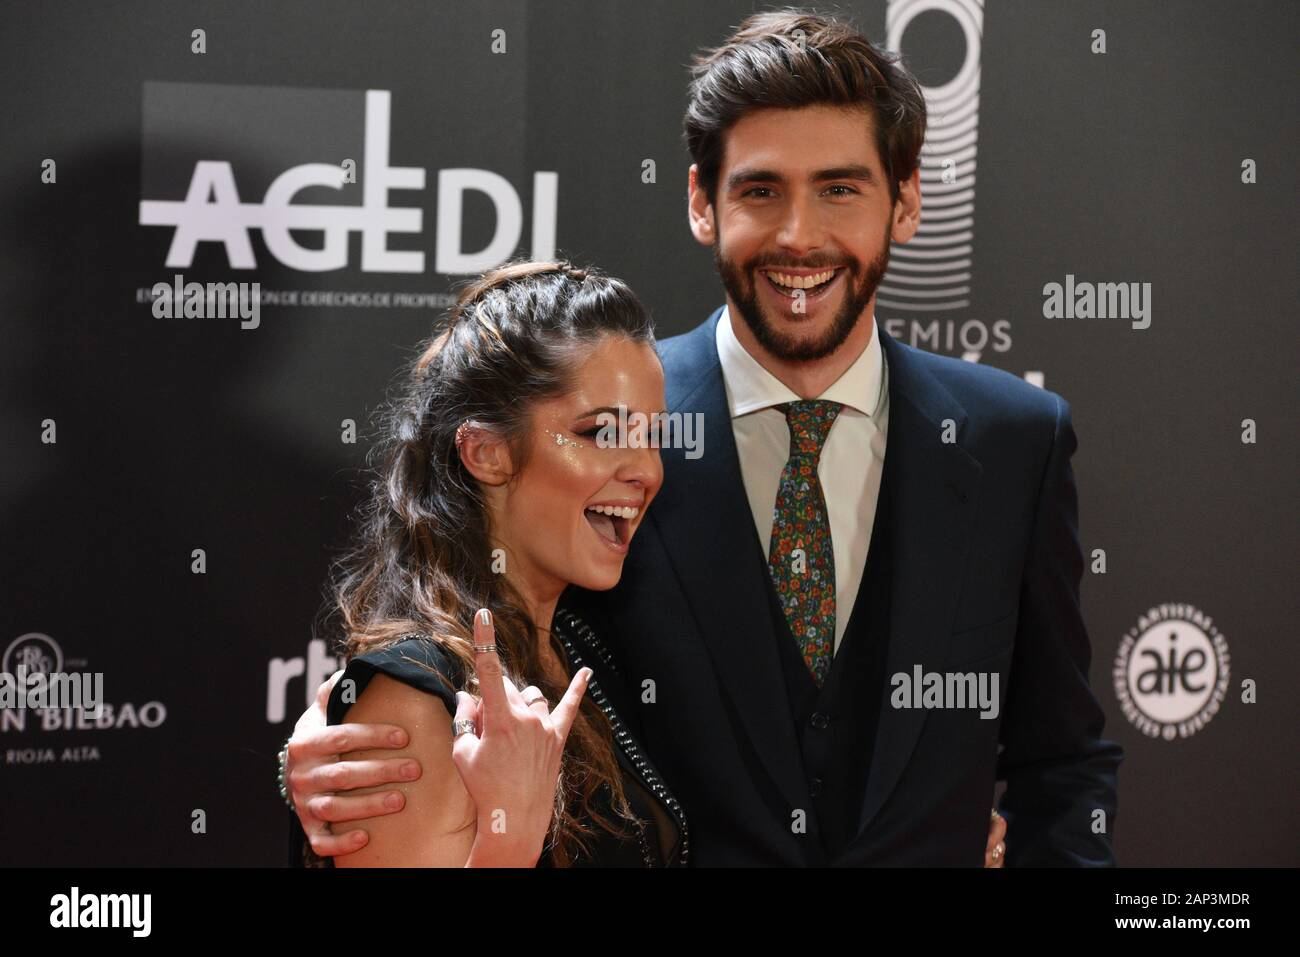 Alvaro Soler High Resolution Stock Photography And Images Alamy